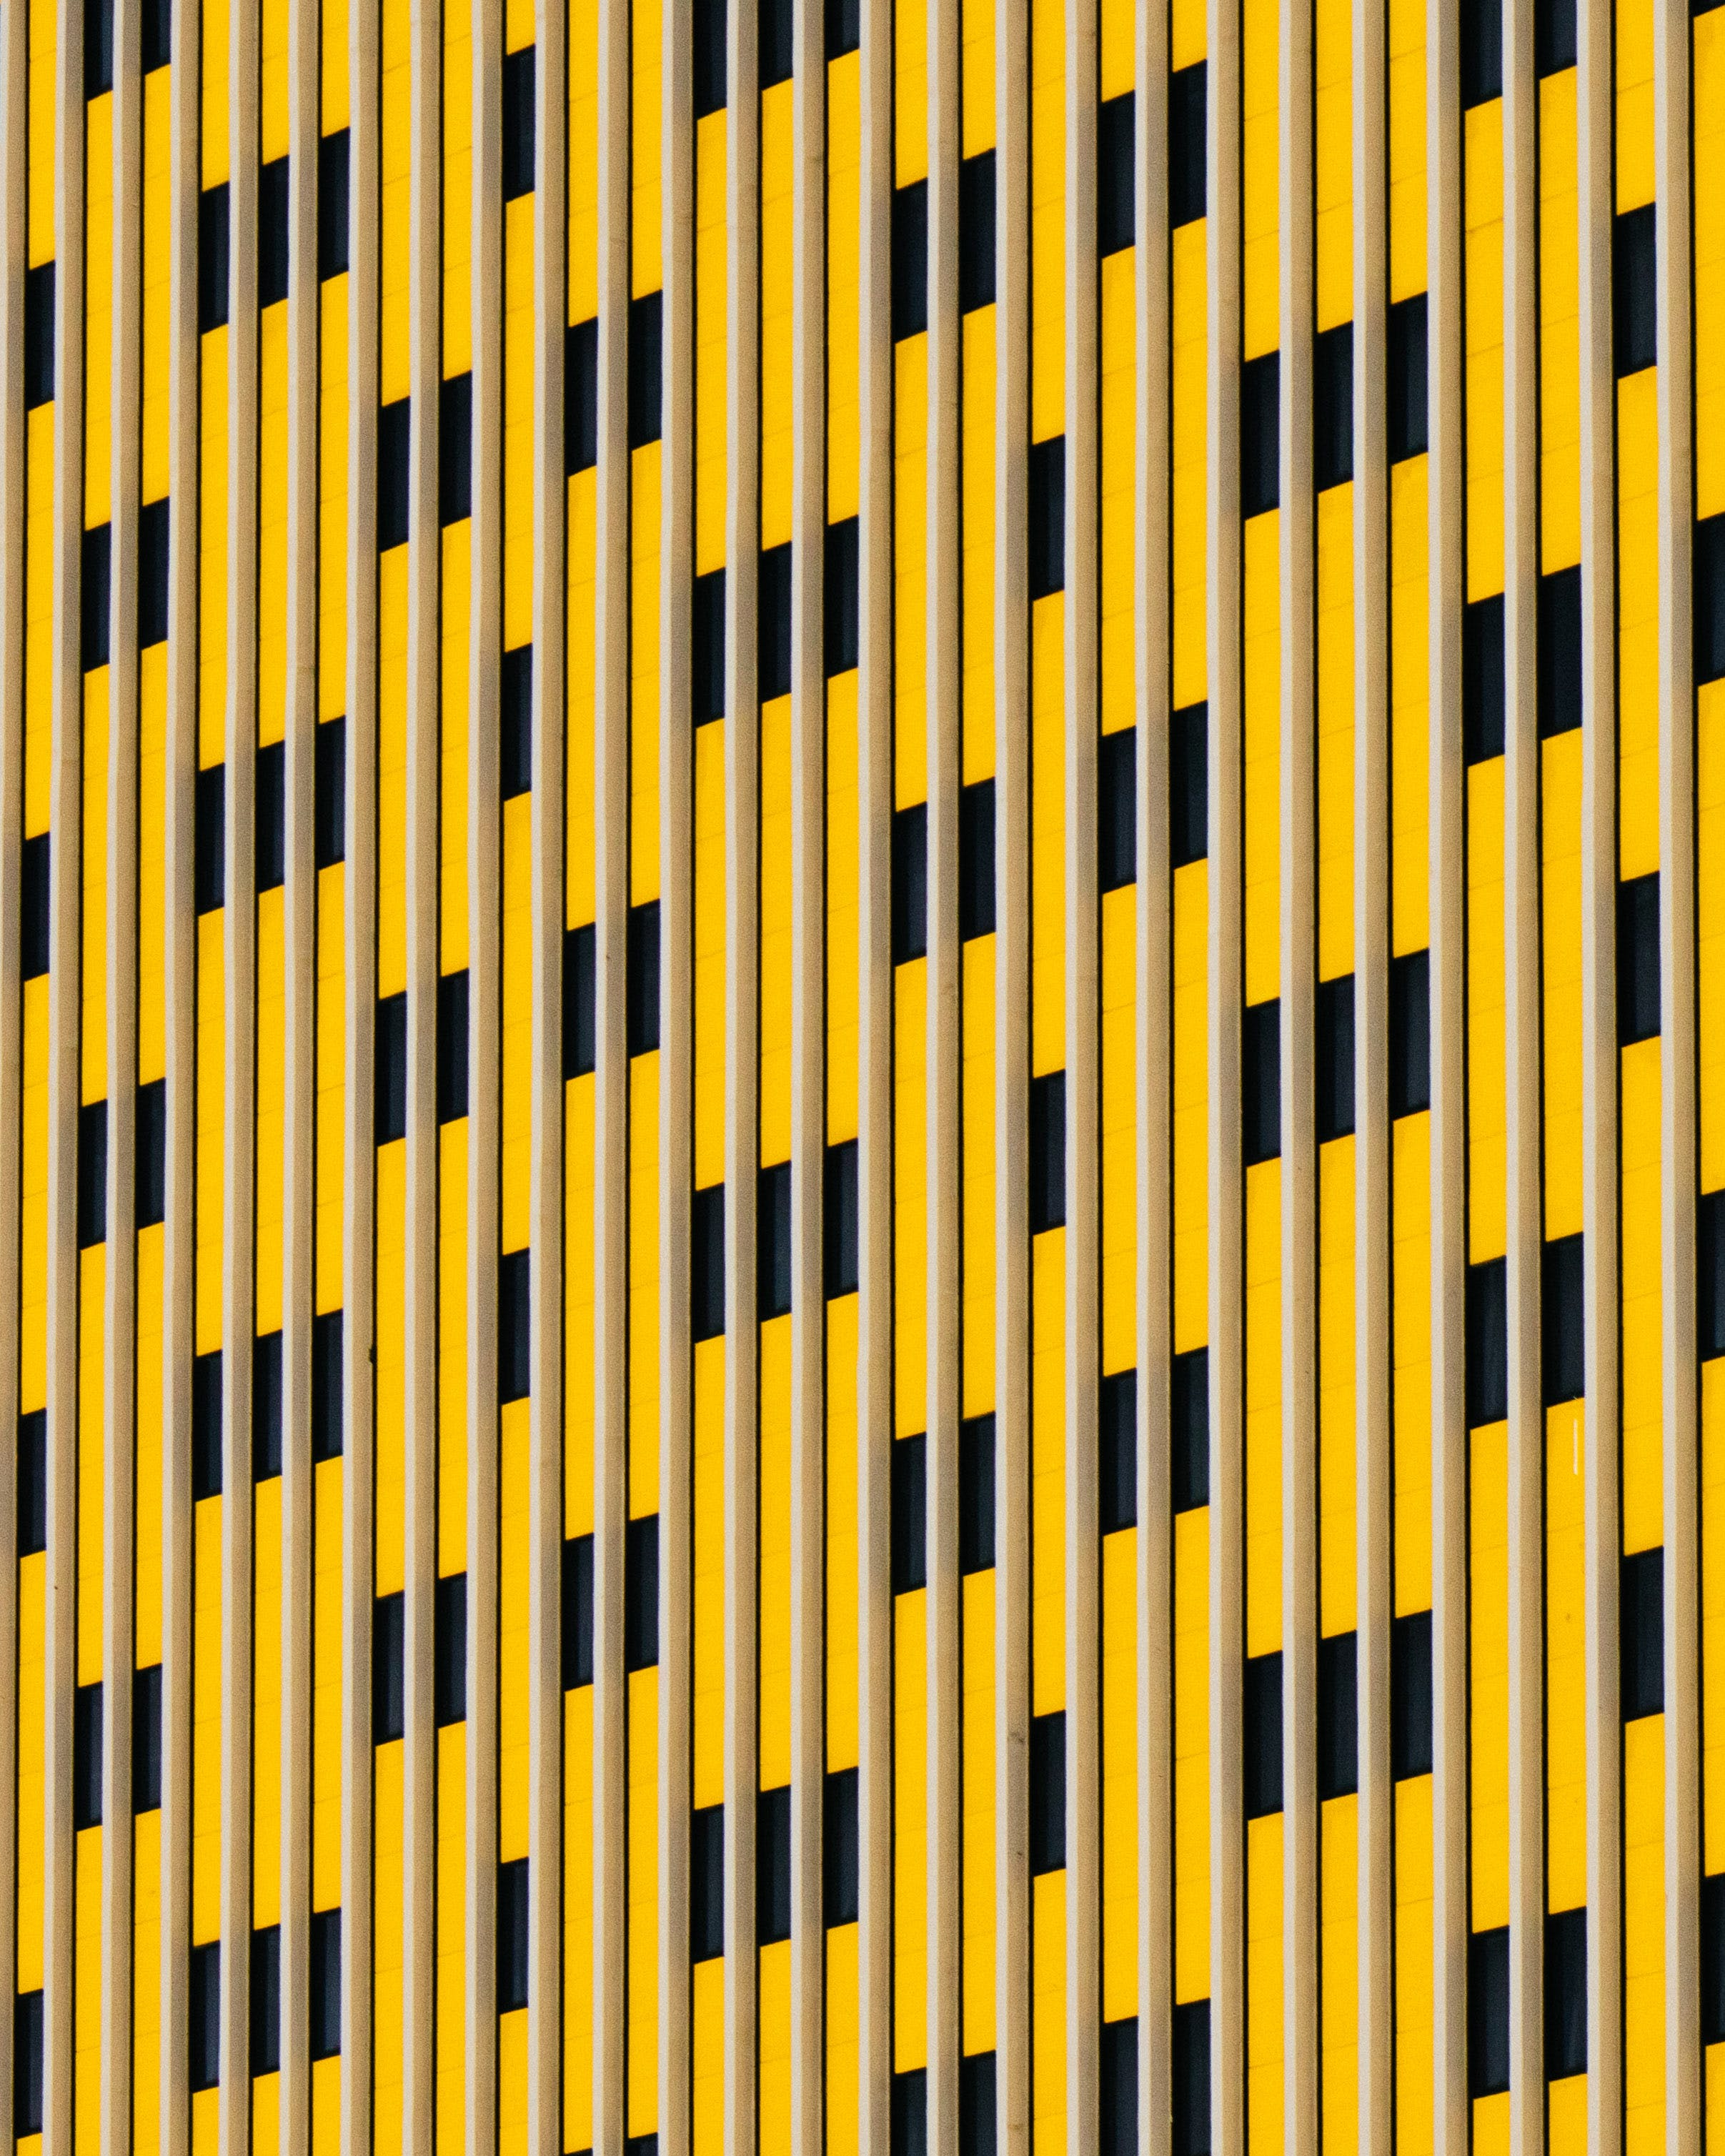 Yellow and Black Striped Pattern